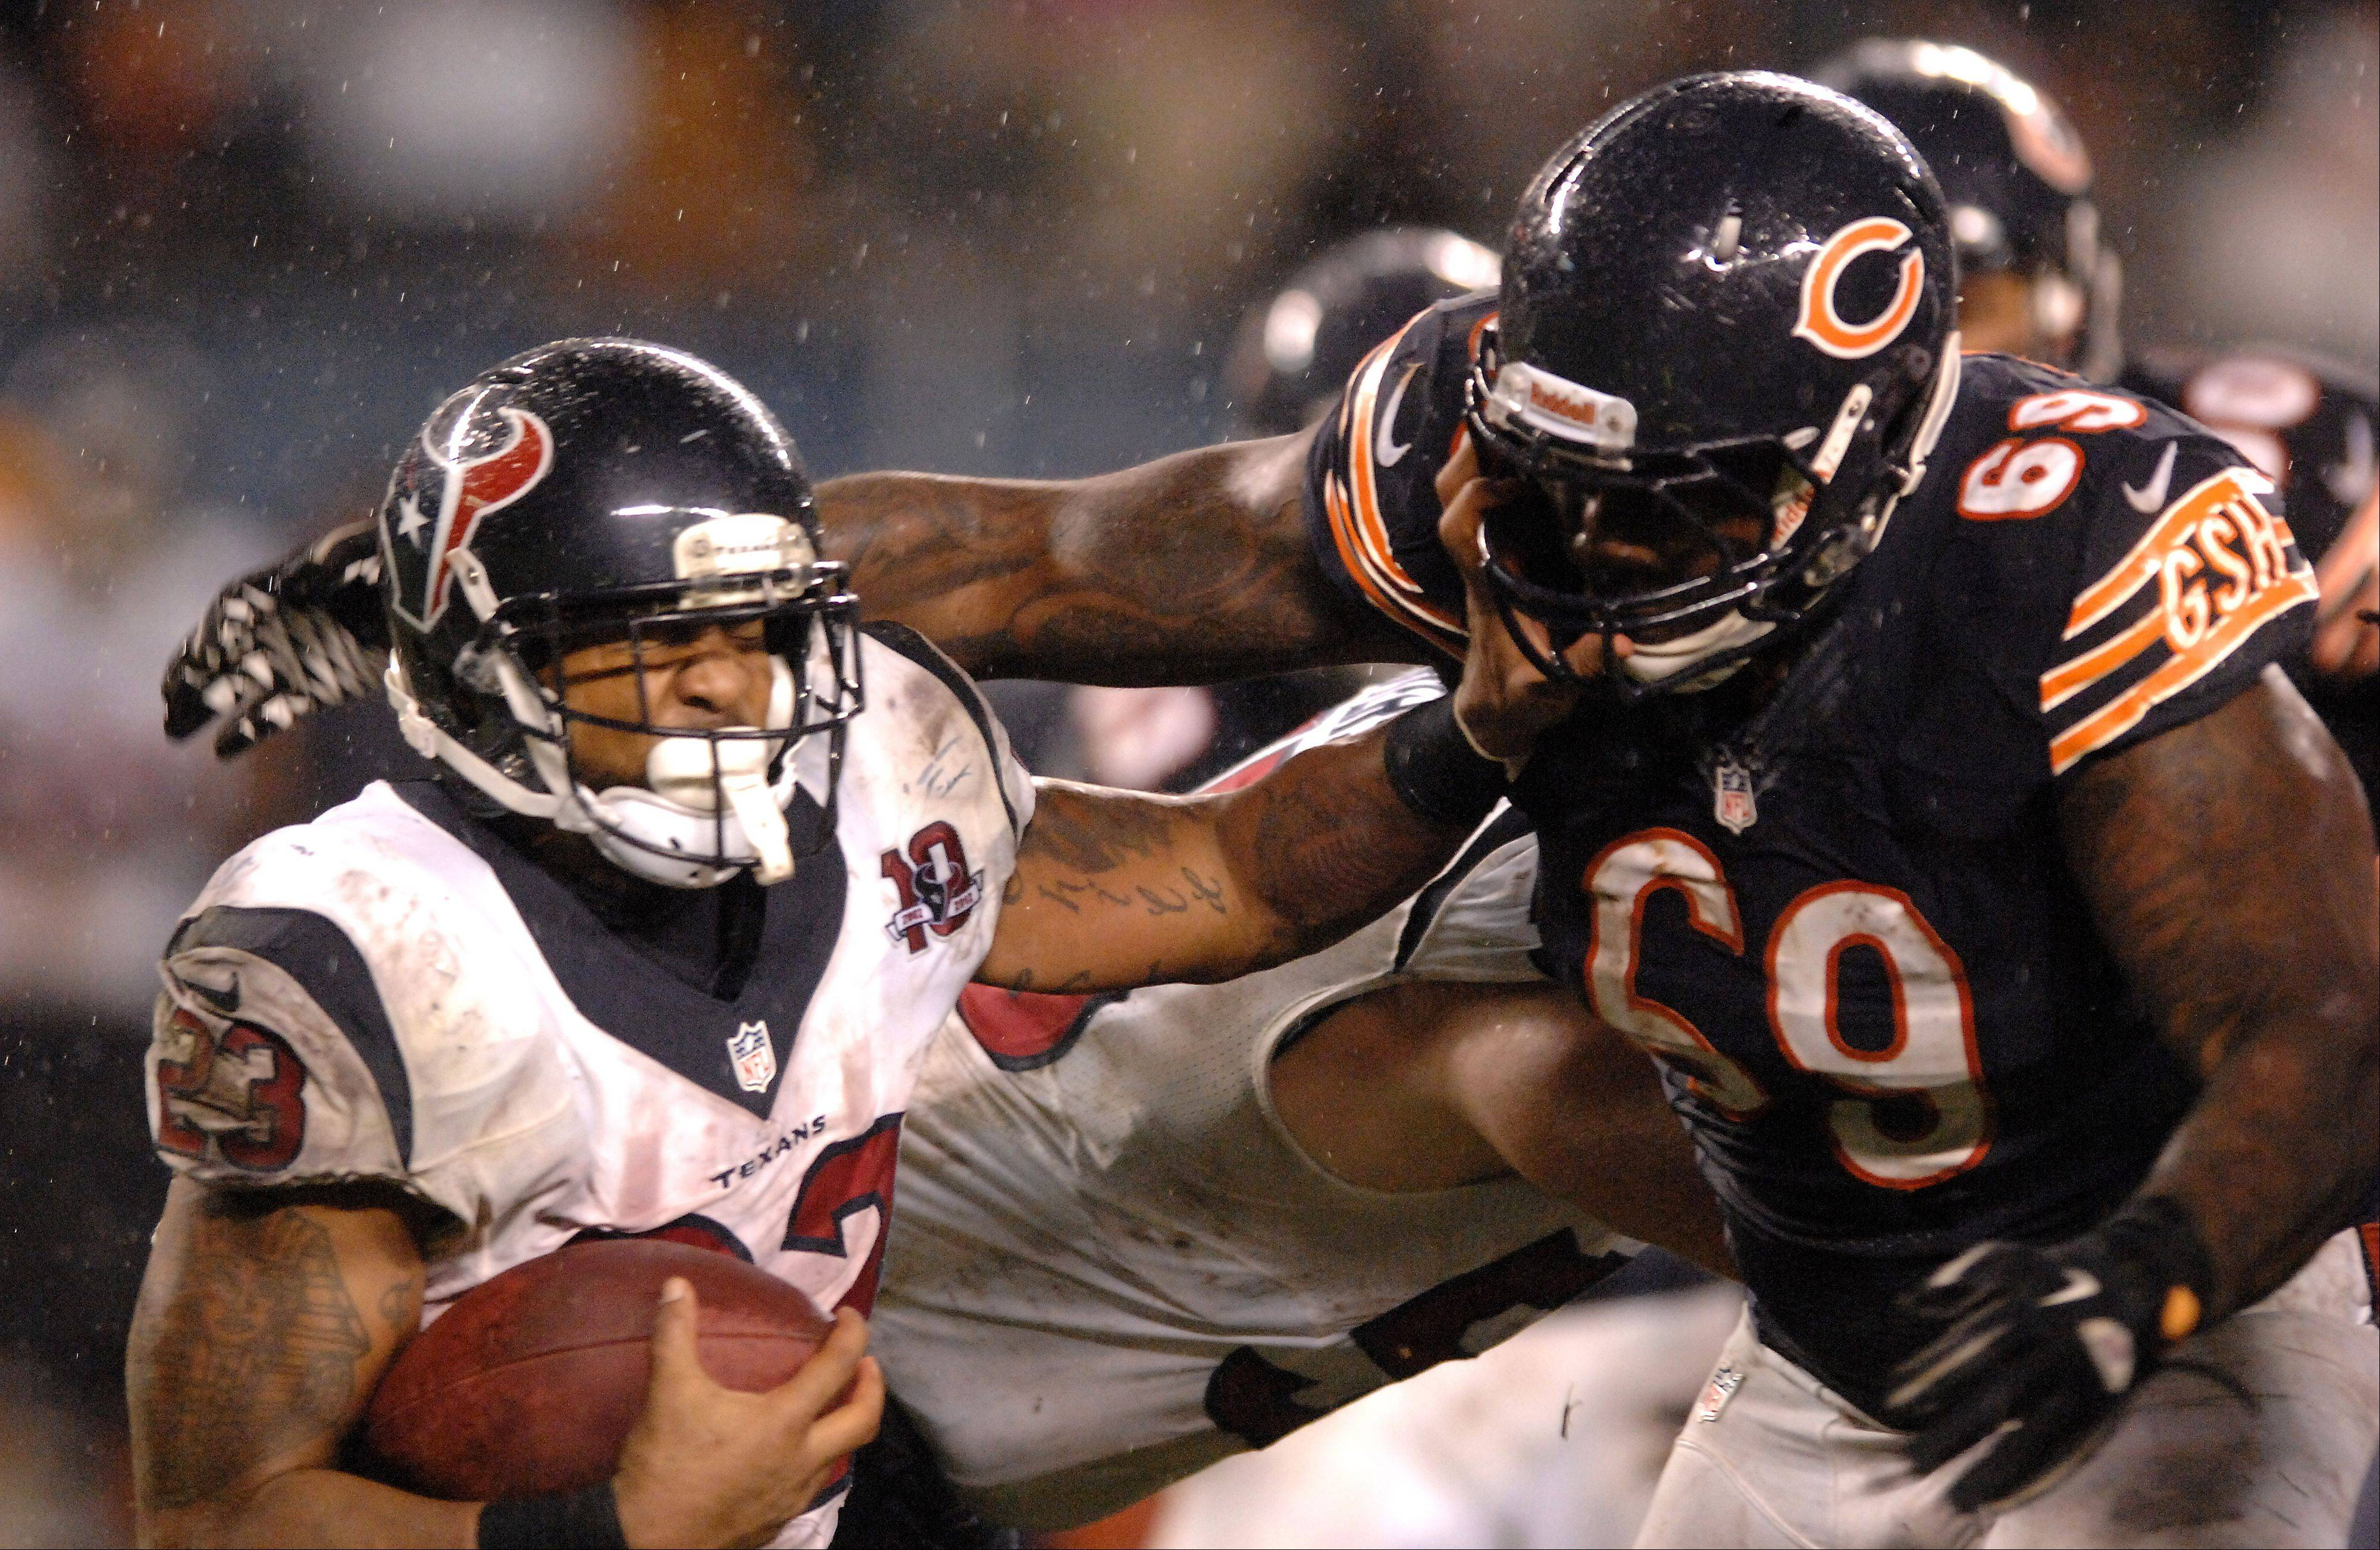 Houston Texans running back Arian Foster (23) is brought down for a loss by Chicago Bears defensive tackle Henry Melton (69) during Sunday's game.